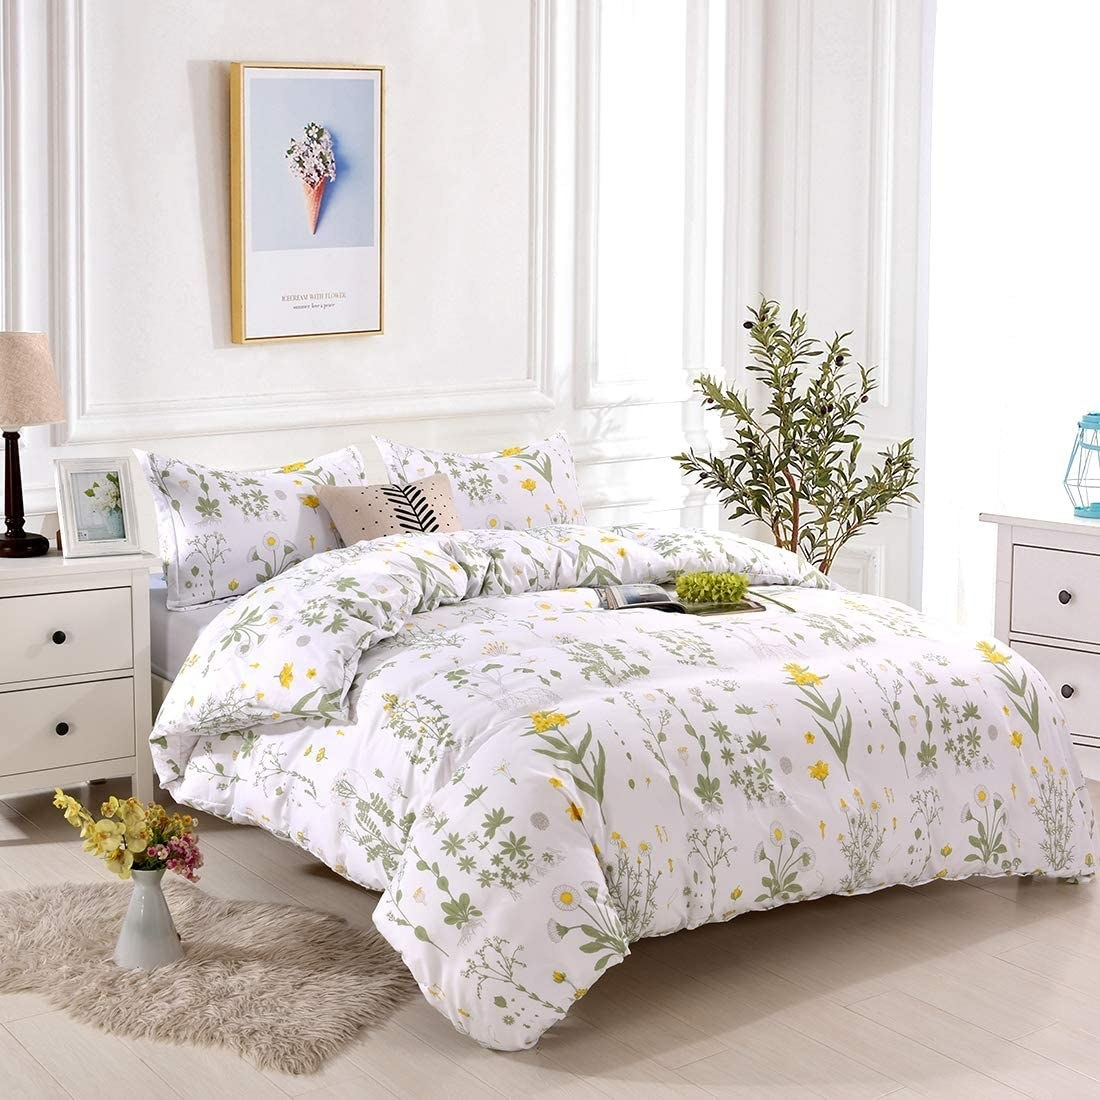 the yellow, green, and white floral bedding set with shams, a comforter, and sheets